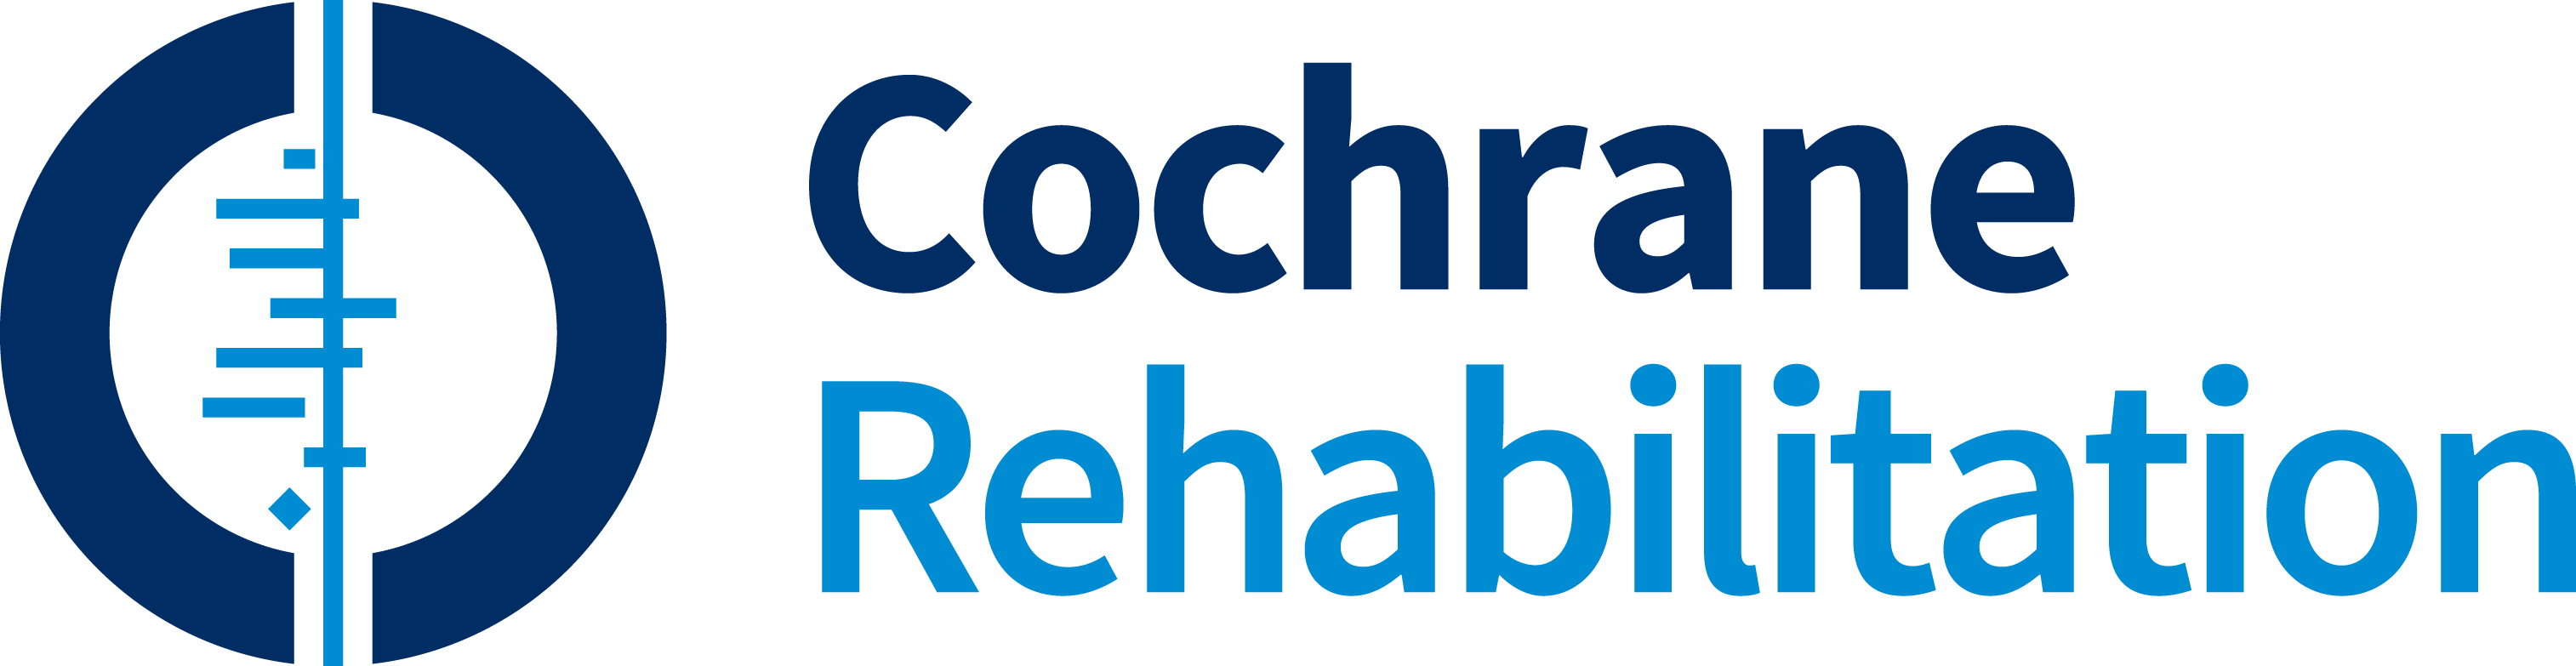 Link to Cochrane Rehabilitation website